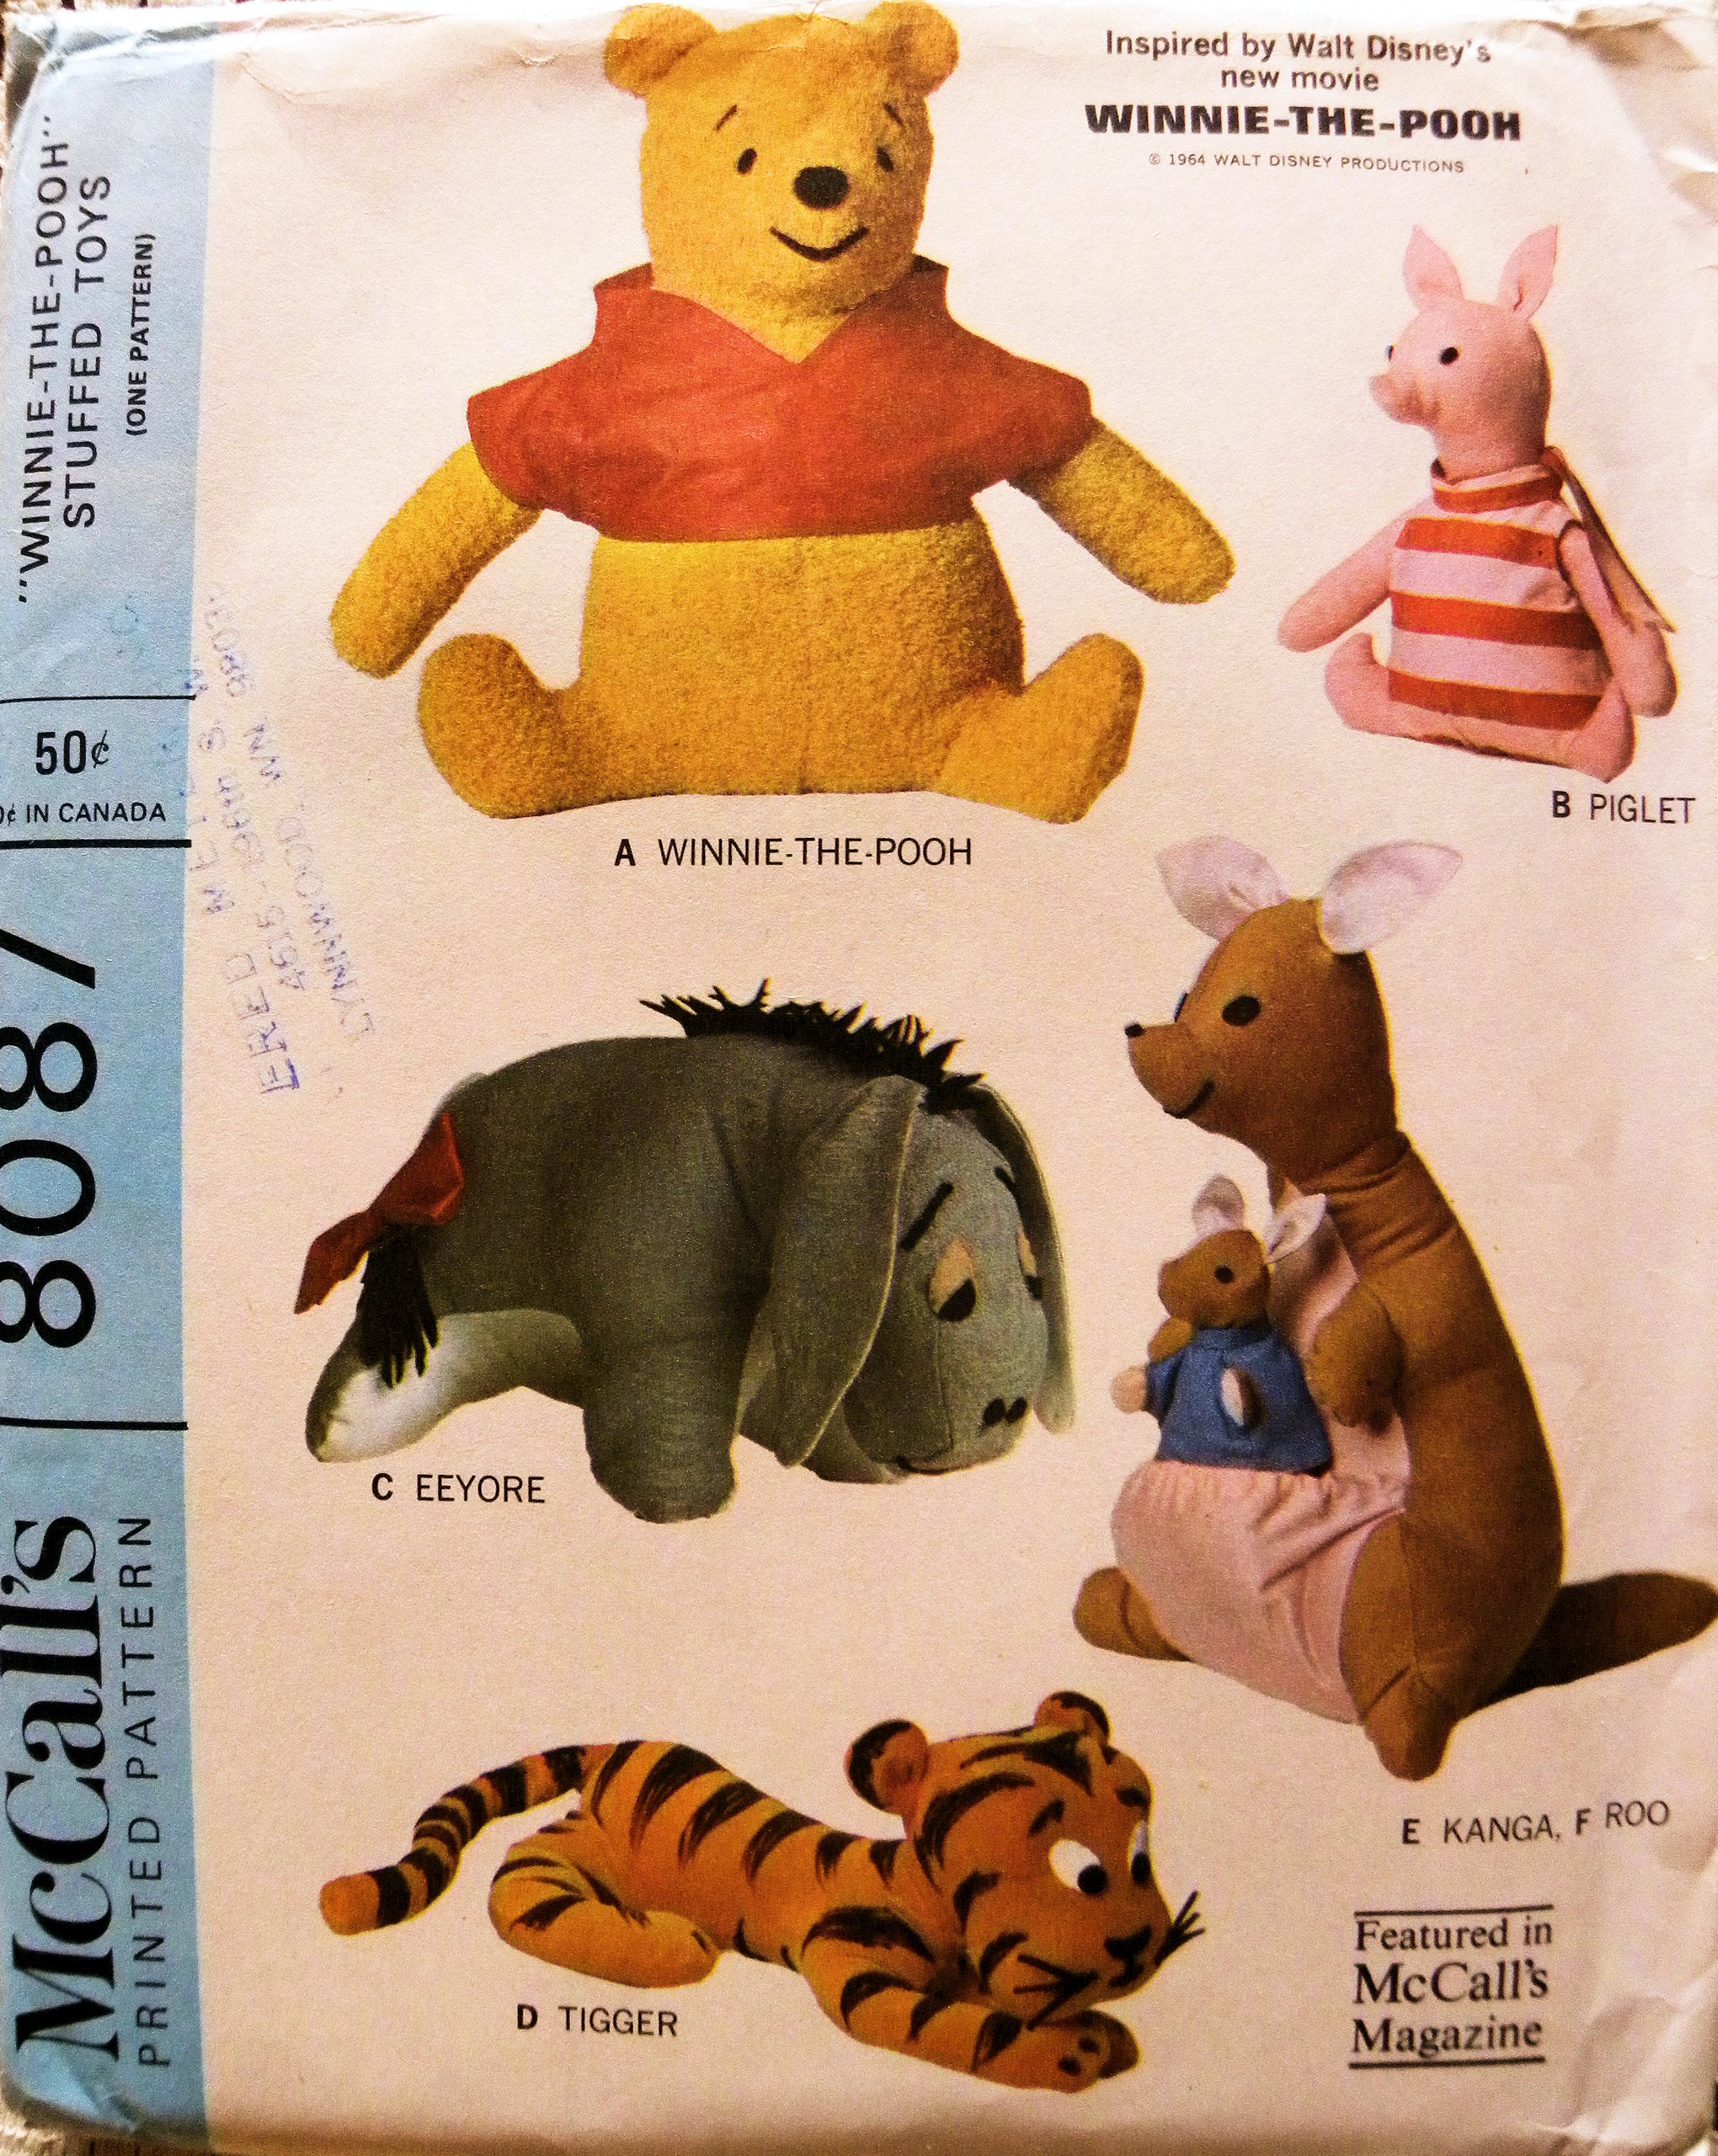 McCalls 8087 Winnie the Pooh Eeyore Piglet, Tigger, Kanga and Roo Stuffed Toy Sewing Pattern Vintage 1965 Walt Disney by McCall's